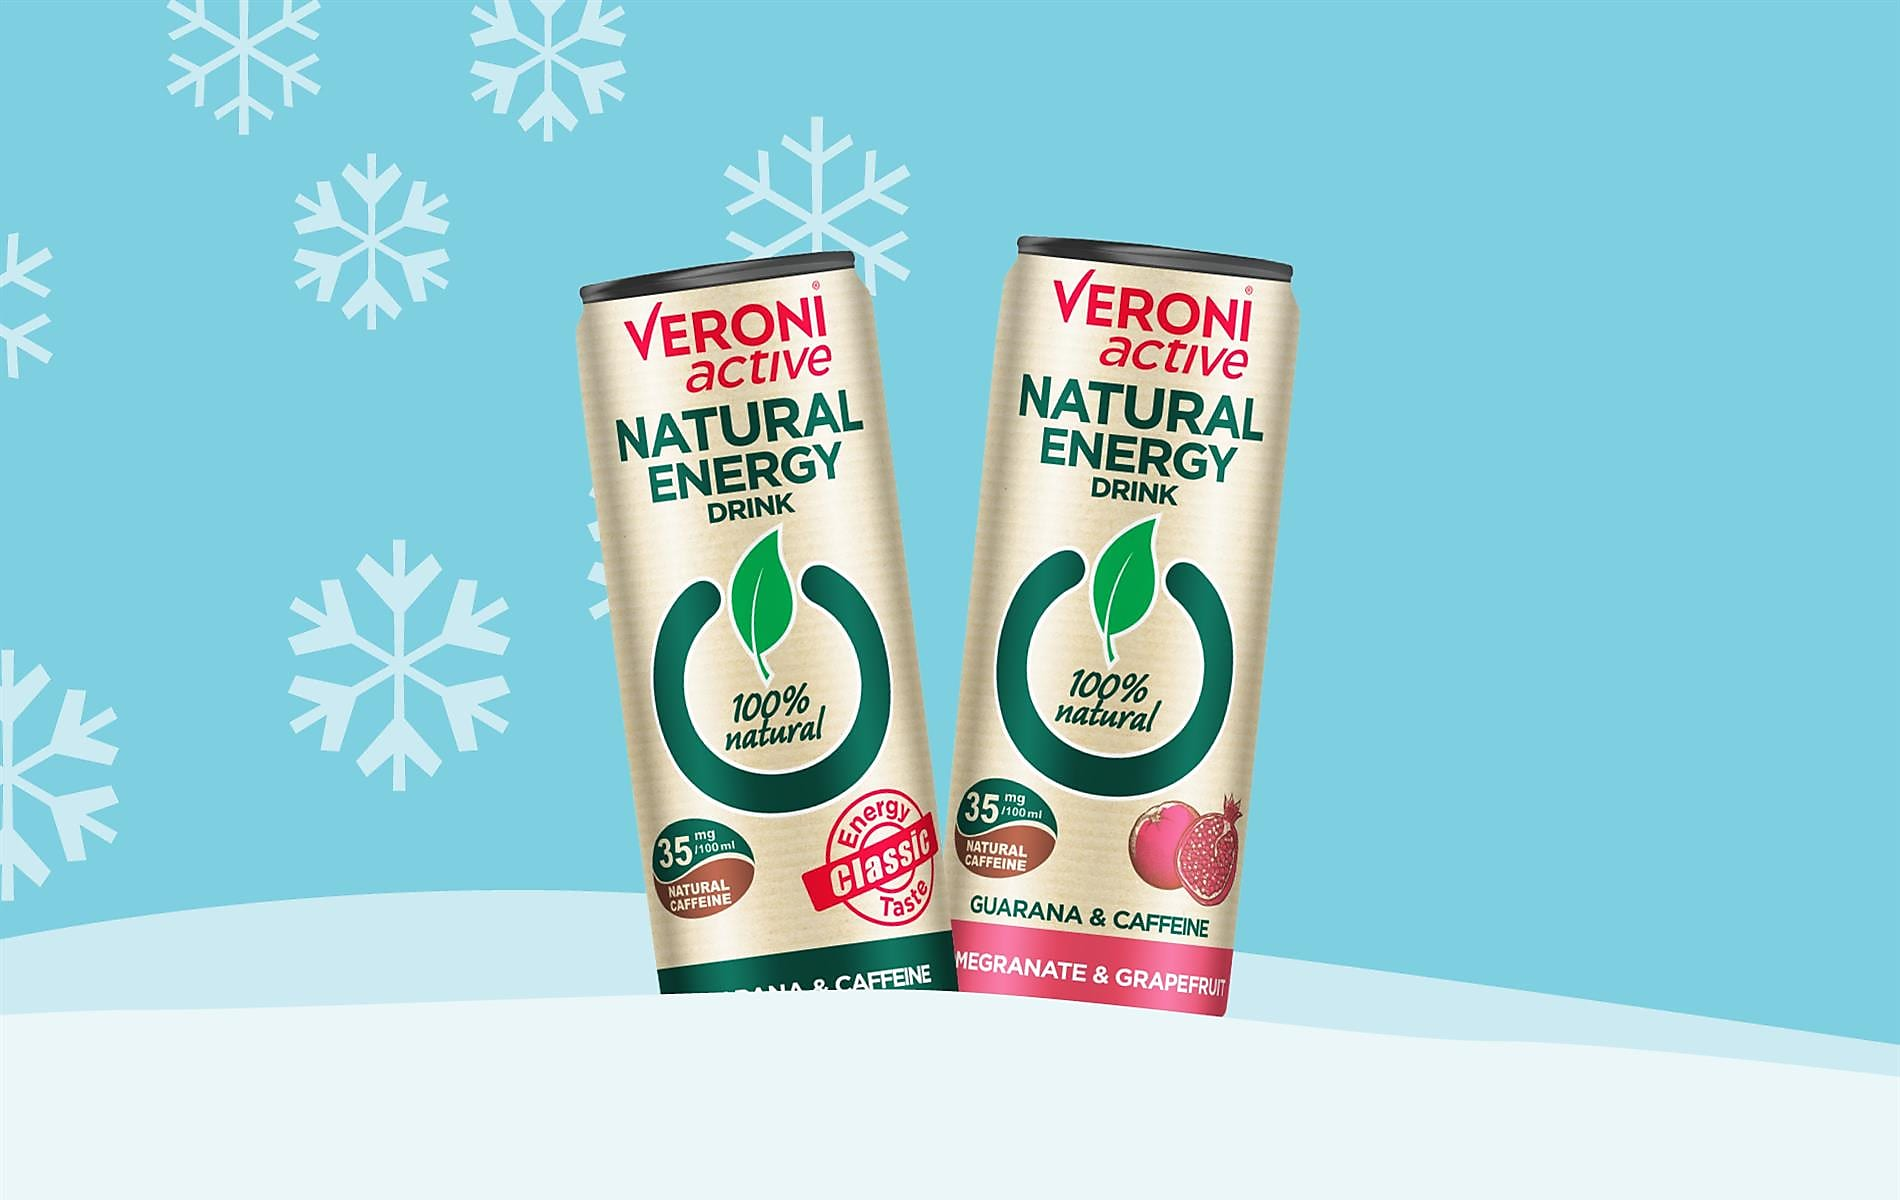 VERONI ACTIVE 250ml x 2 za 5,99zł